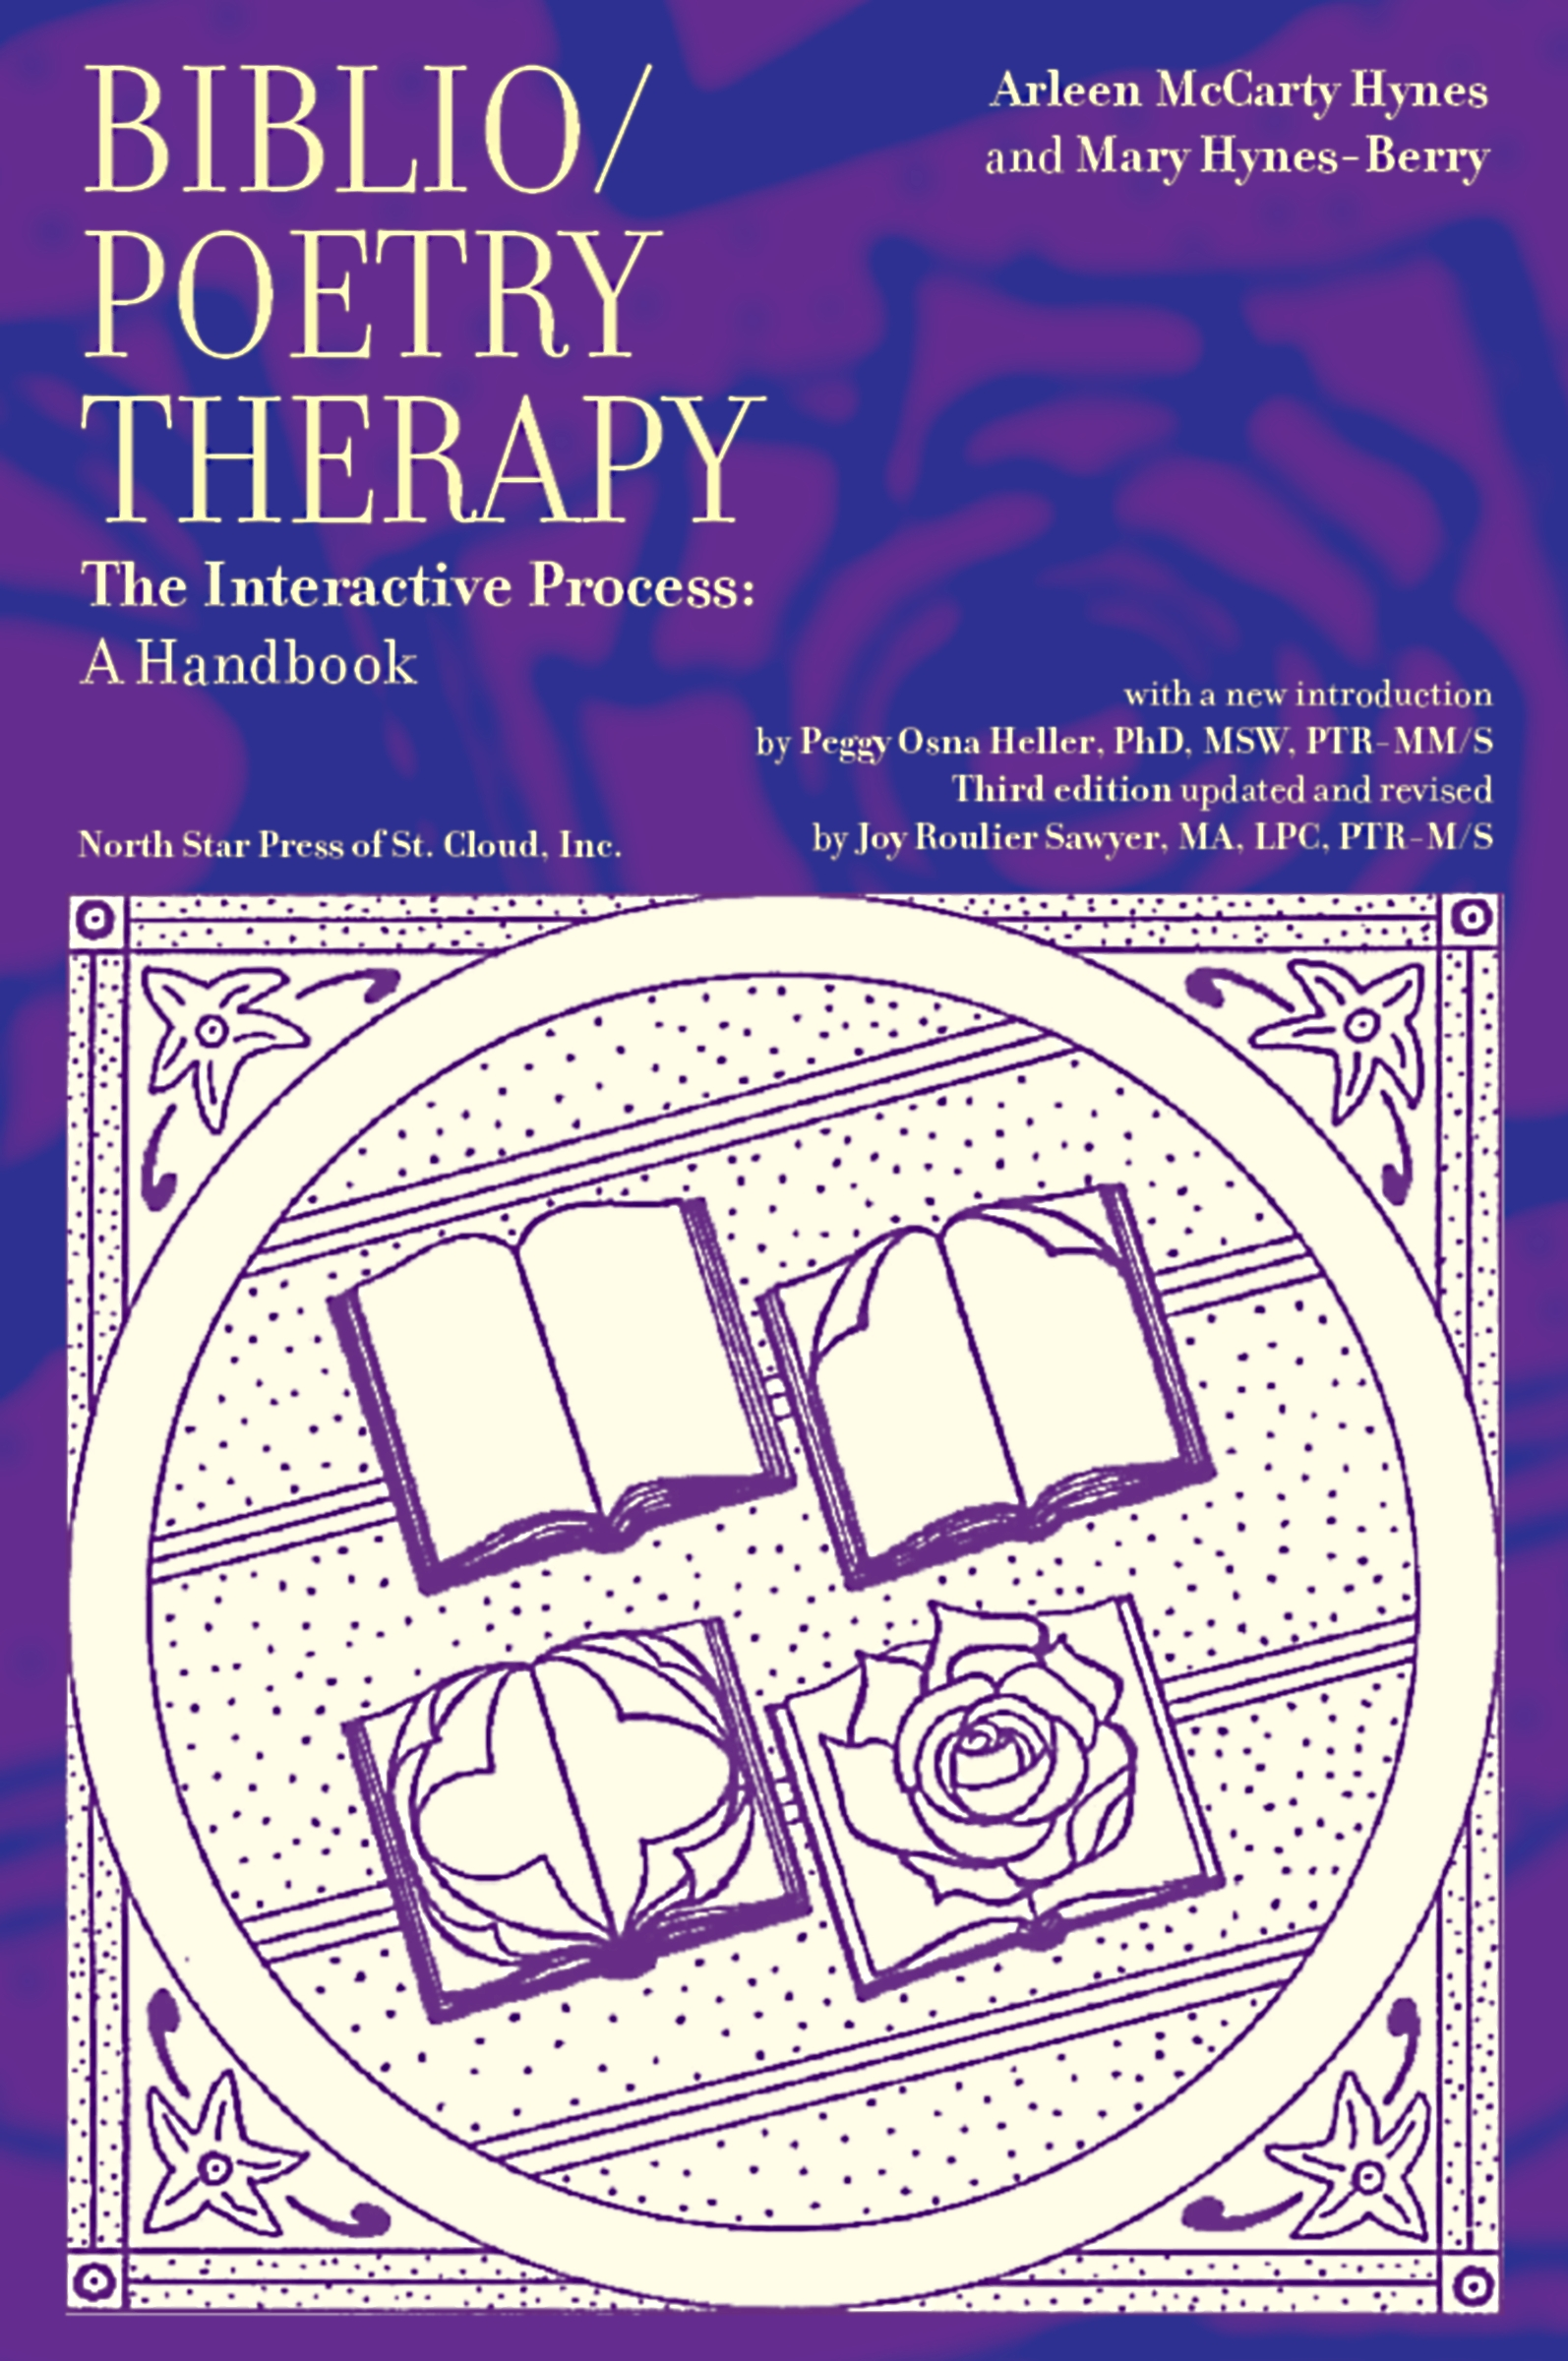 Biblio/Poetry Therapy